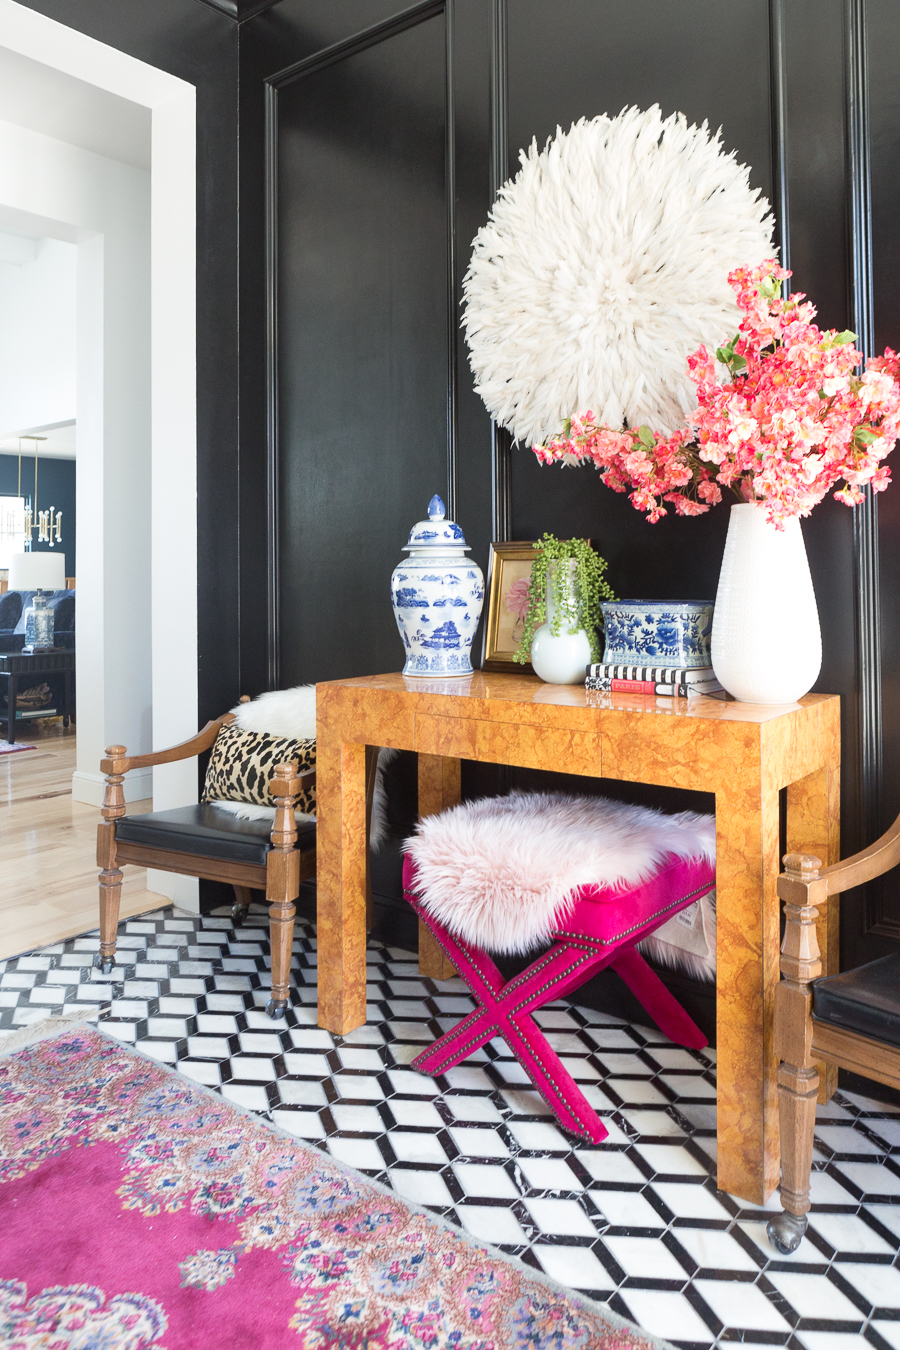 Best How To Use A Juju Hat In Home Decor Cc And Mike Design This Month